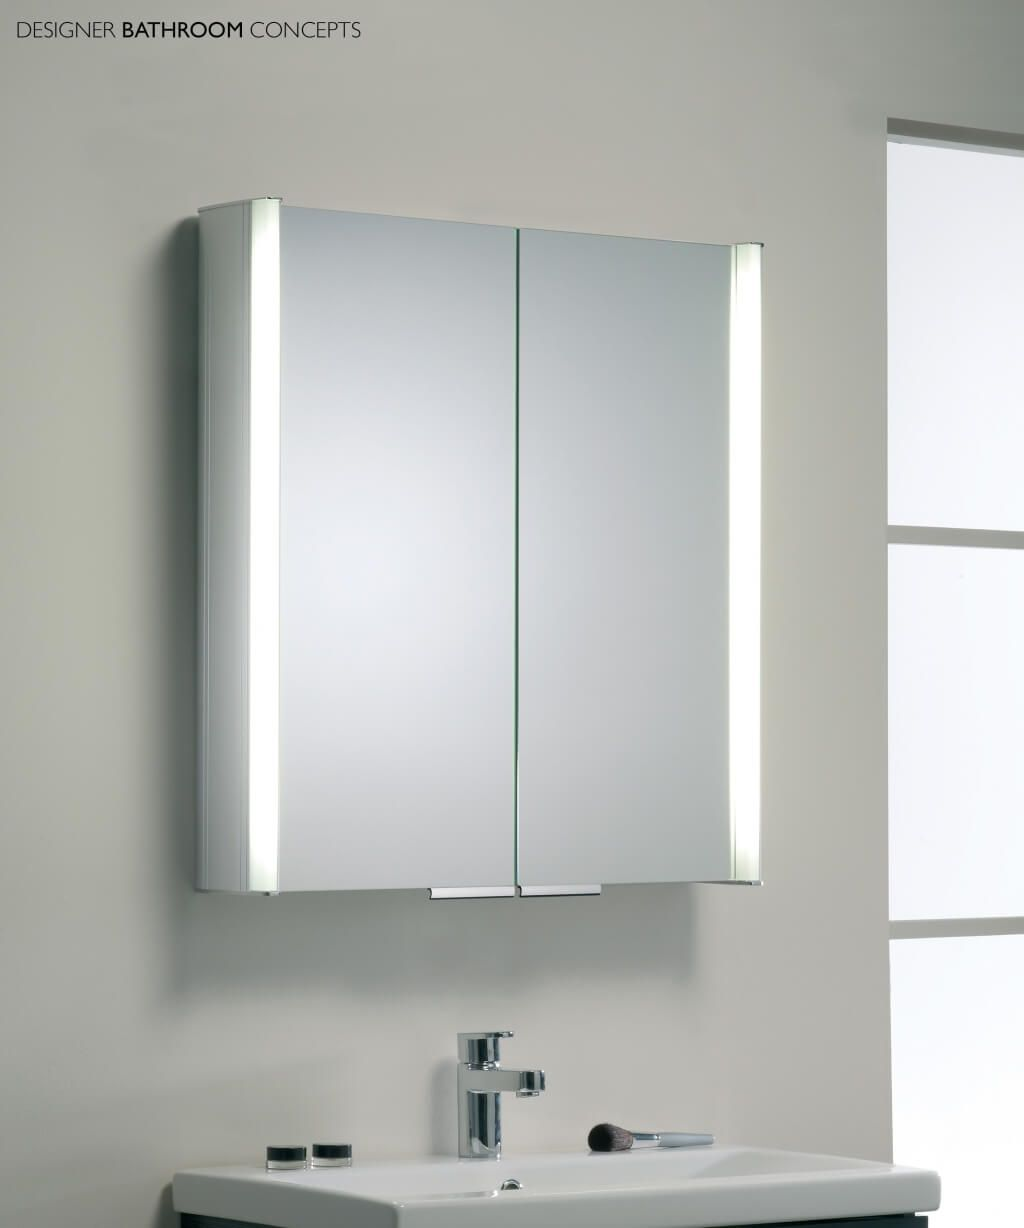 Bathroom Mirror Cabinet With Light And Standalone Bahtroom Sink And Bathroom Wall Cabinet Plans